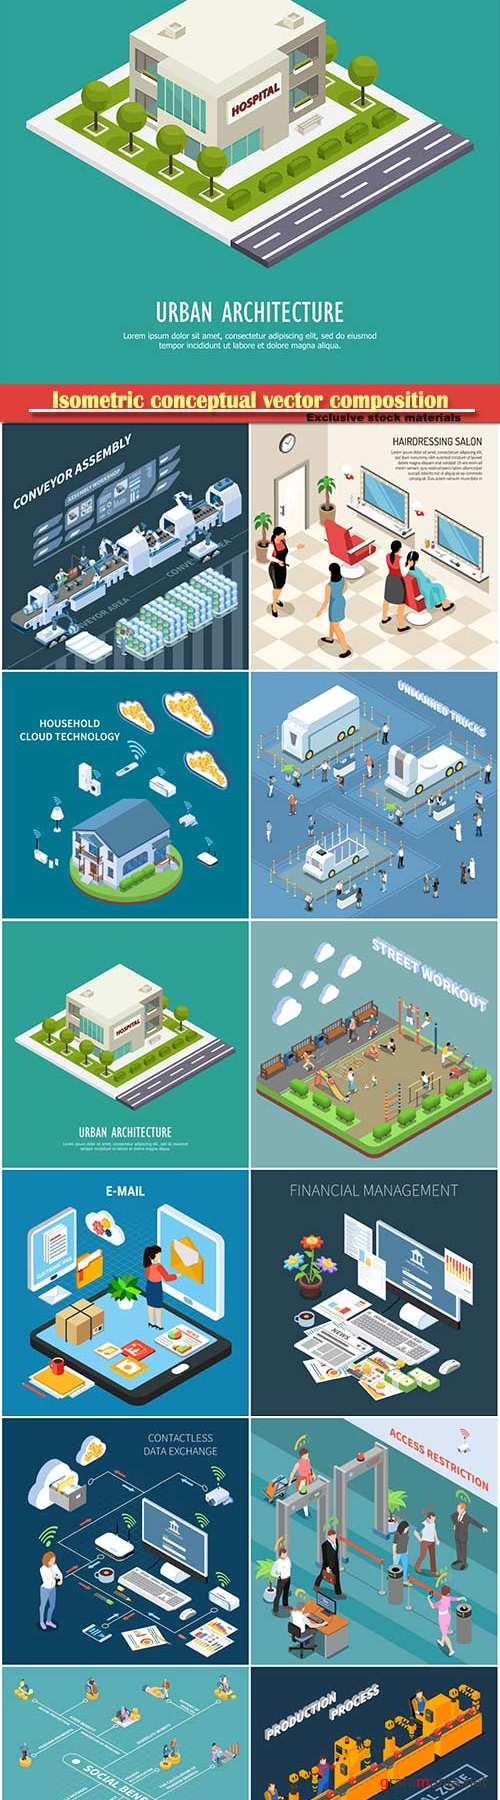 Isometric conceptual vector composition, infographics template # 75